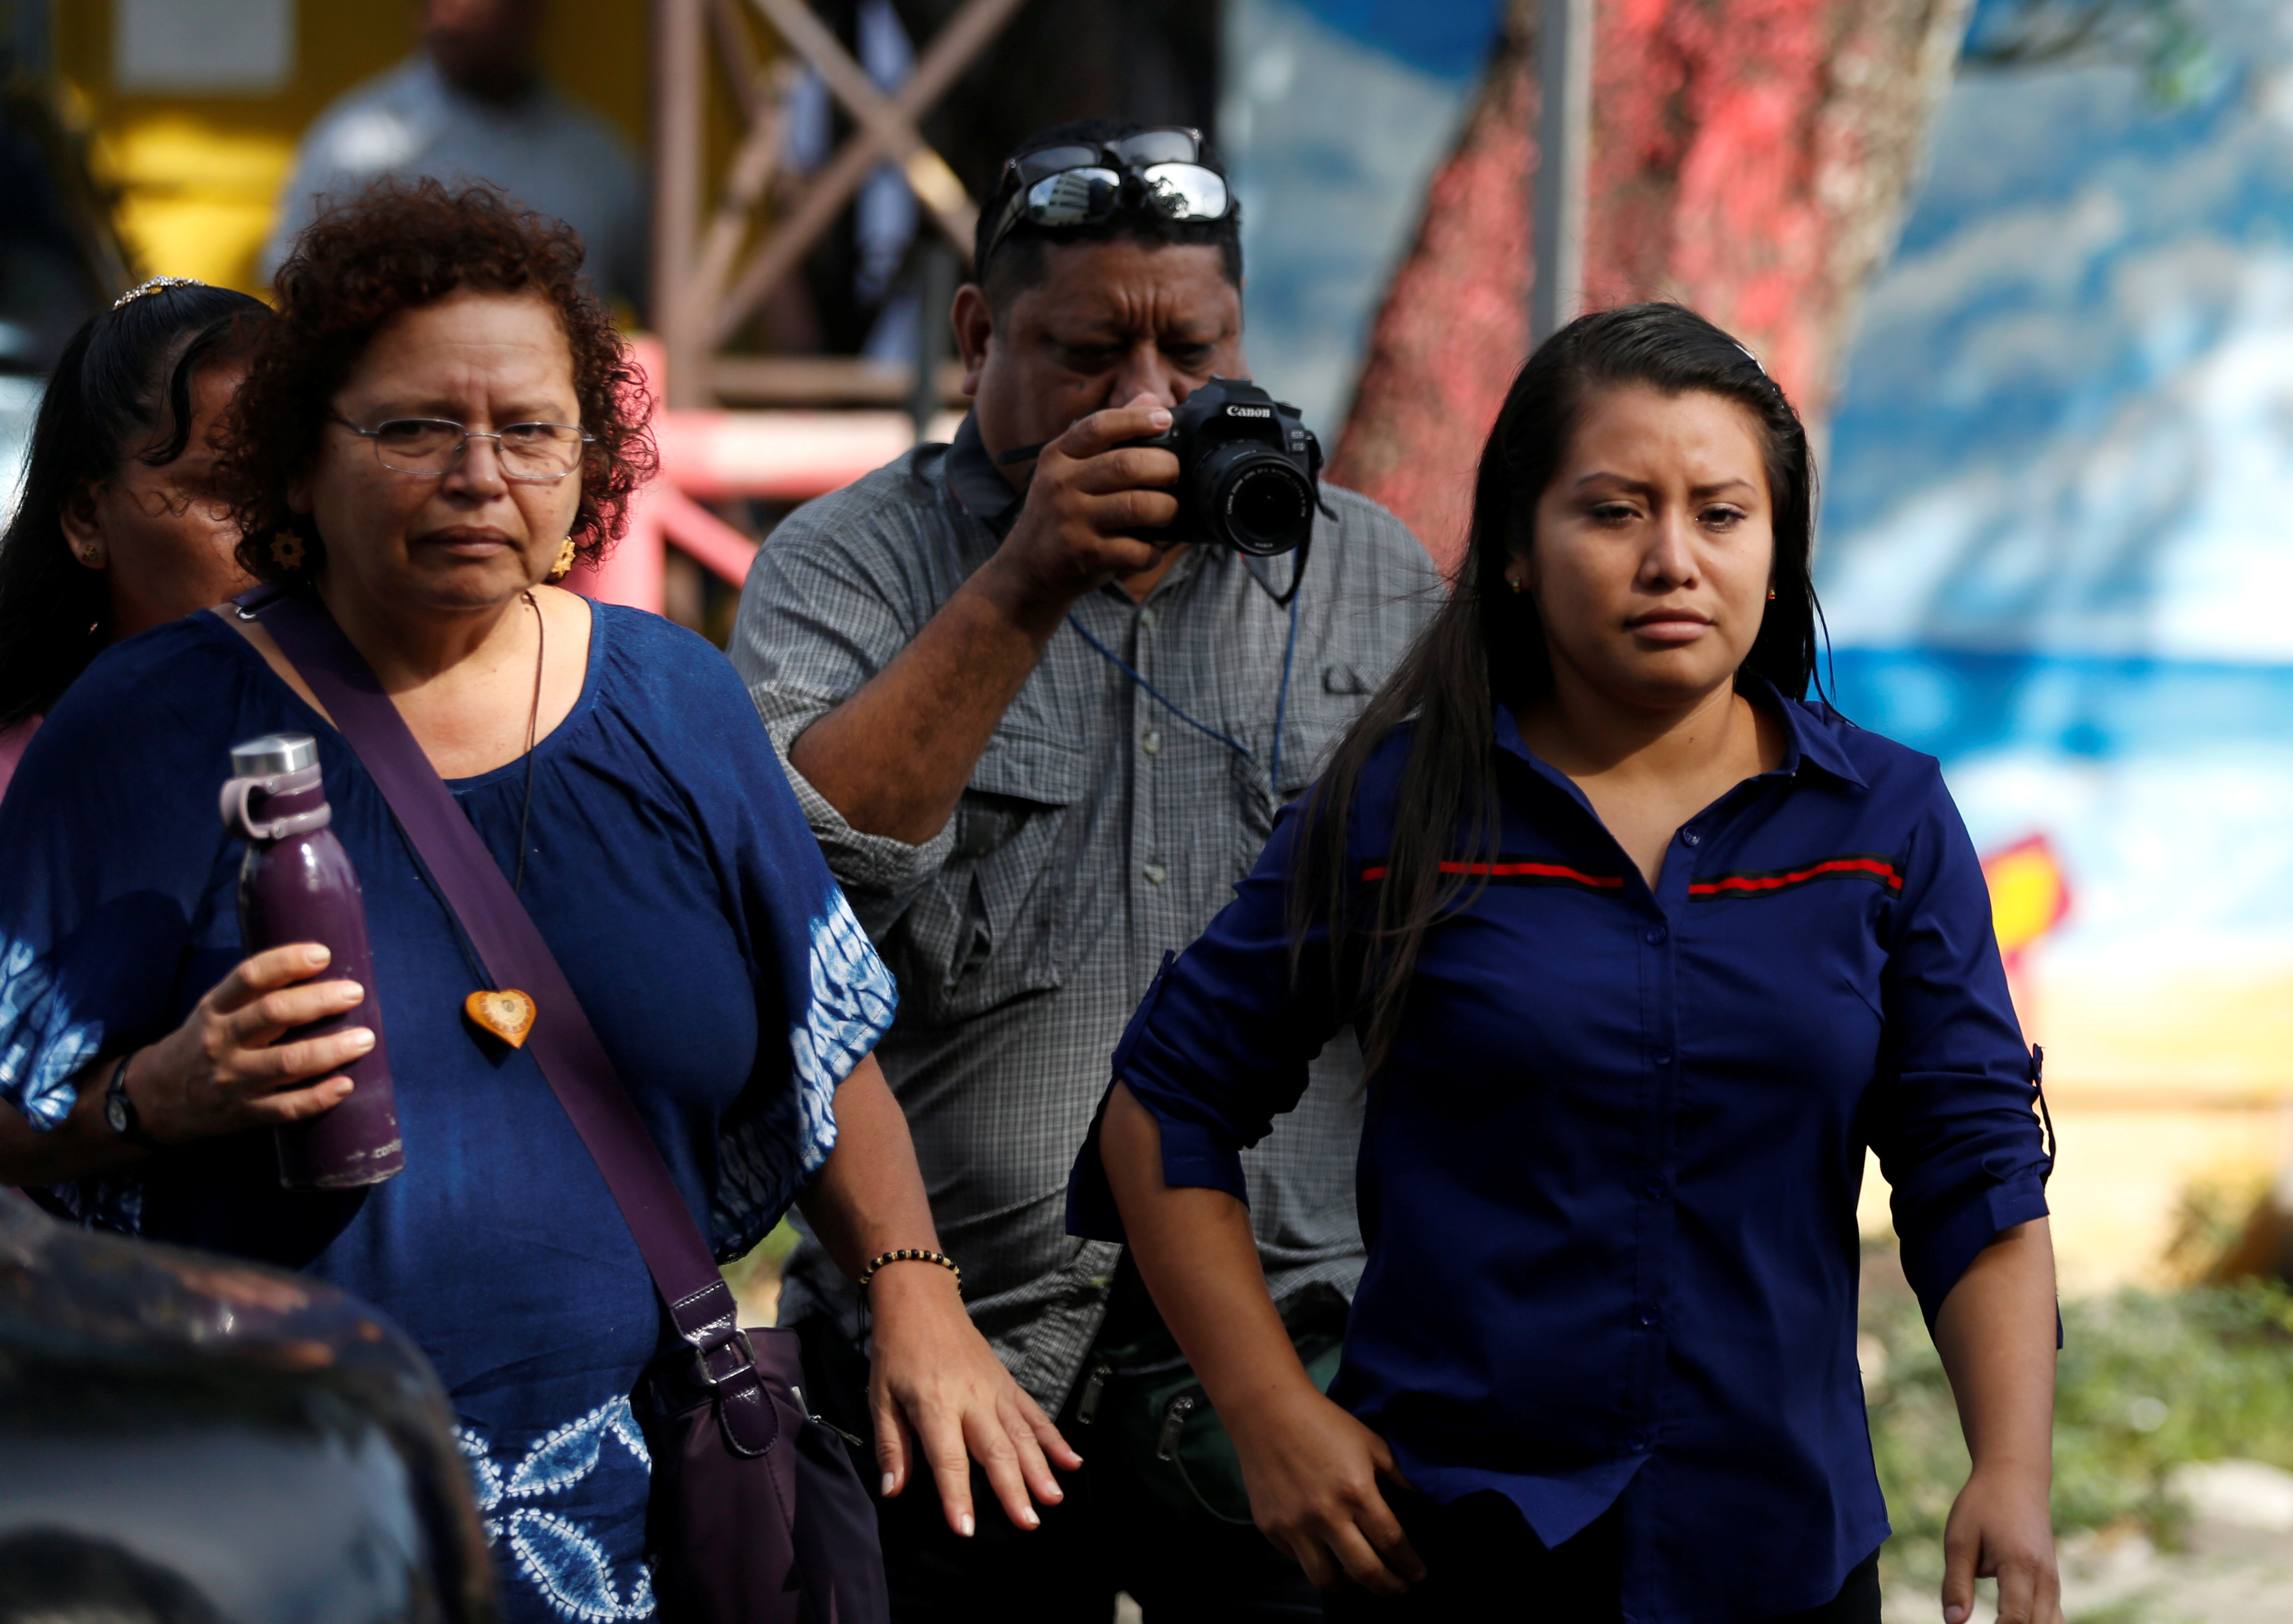 """Evelyn Hernandez, who was sentenced to 30 years in prison for a suspected abortion, arrives with Salvadoran feminist and social activist Morena Herrera for a hearing in Ciudad Delgado, El Salvador July 15, 2019. Placards read """"Justice for Evelyn"""". REUTERS/Jose Cabezas - RC1BD2C1A0E0"""